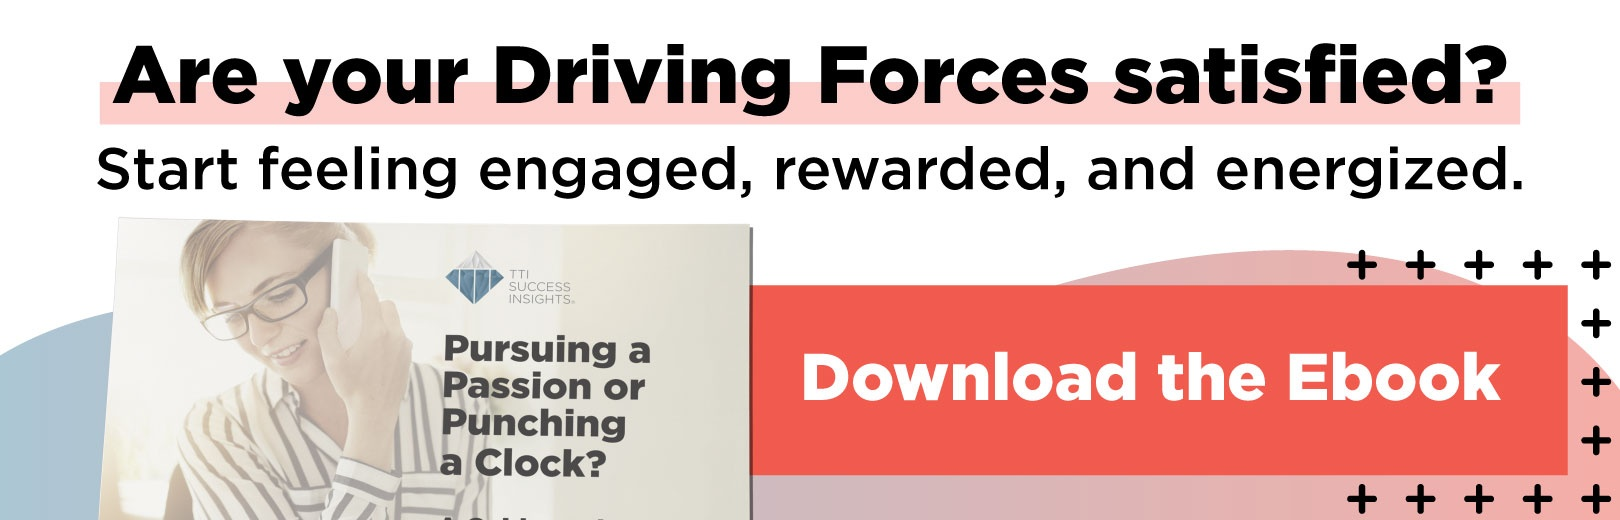 download free ebook about the 12 Driving Forces assessment